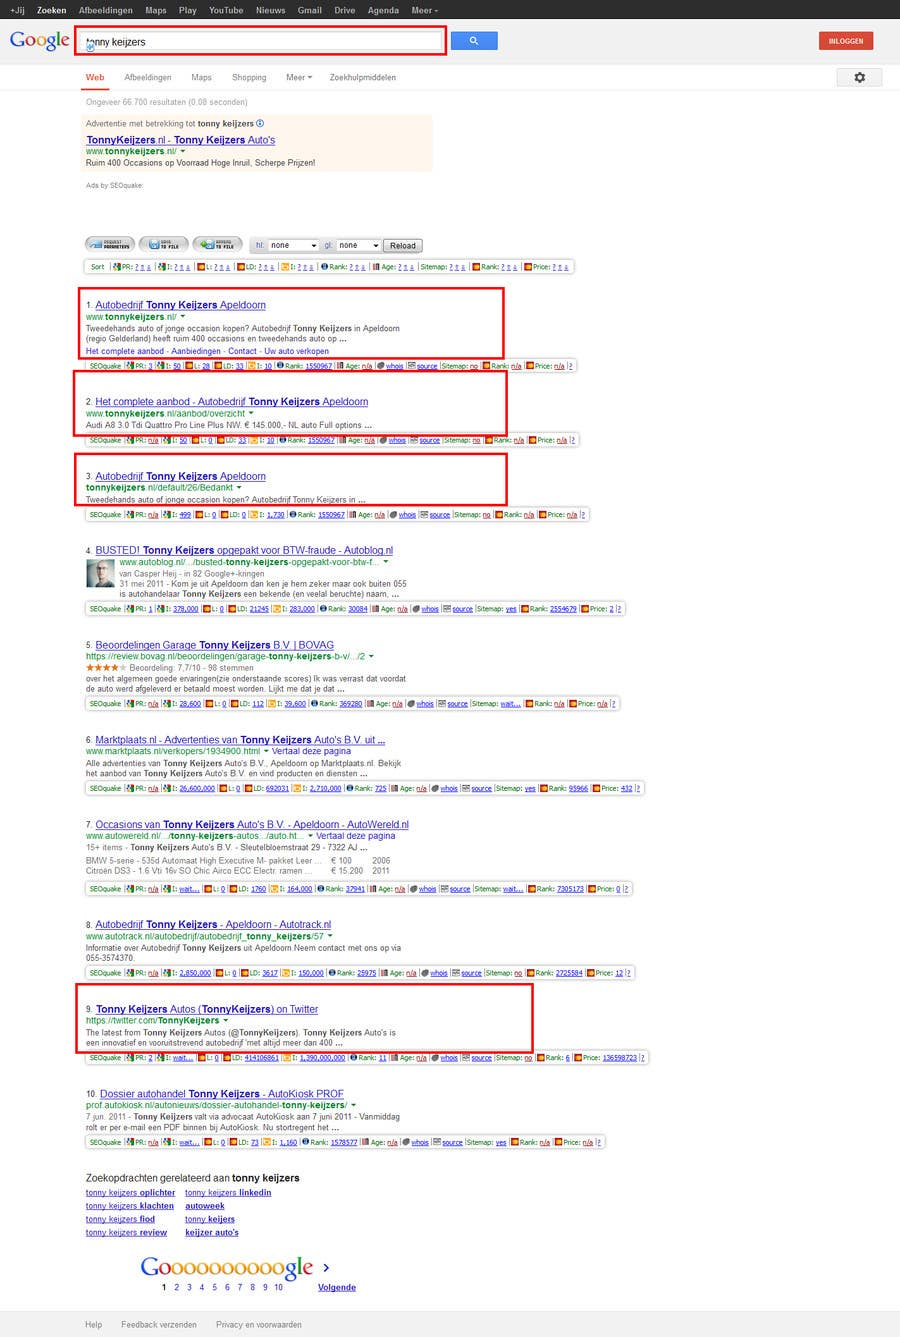 #13 for SEO Expert for push our site to www.Google.DE on Page 1 - white hat only! by serpexperts